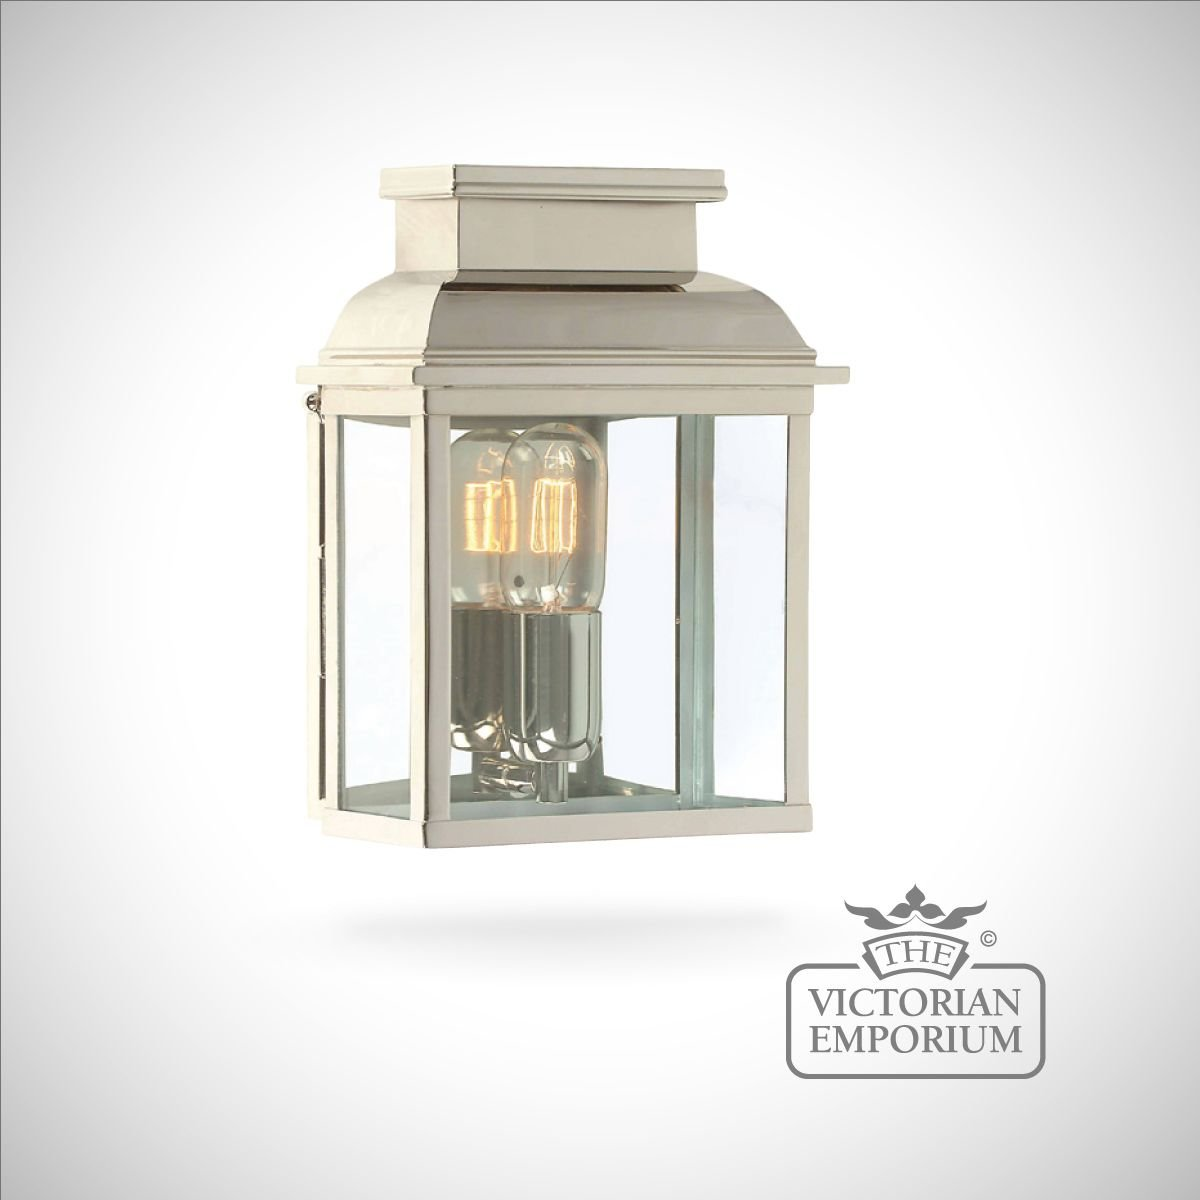 Bailey brass wall lantern polished nickel outdoor wall lights for Victorian style exterior lighting